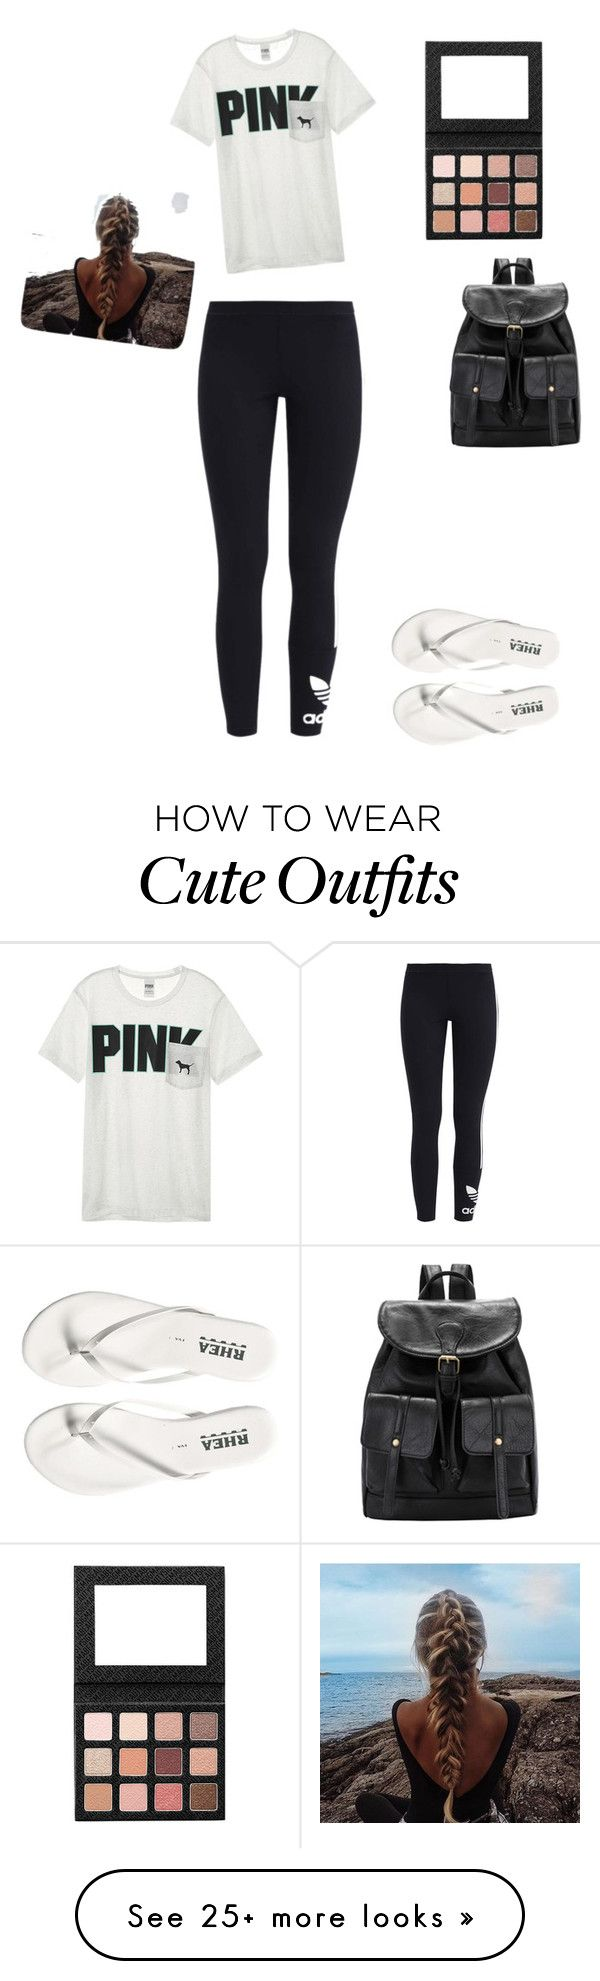 """Casual outfit with leggings"" by khoneygirl on Polyvore featuring adidas Originals, Victoria's Secret, Leggings and WardrobeStaples"